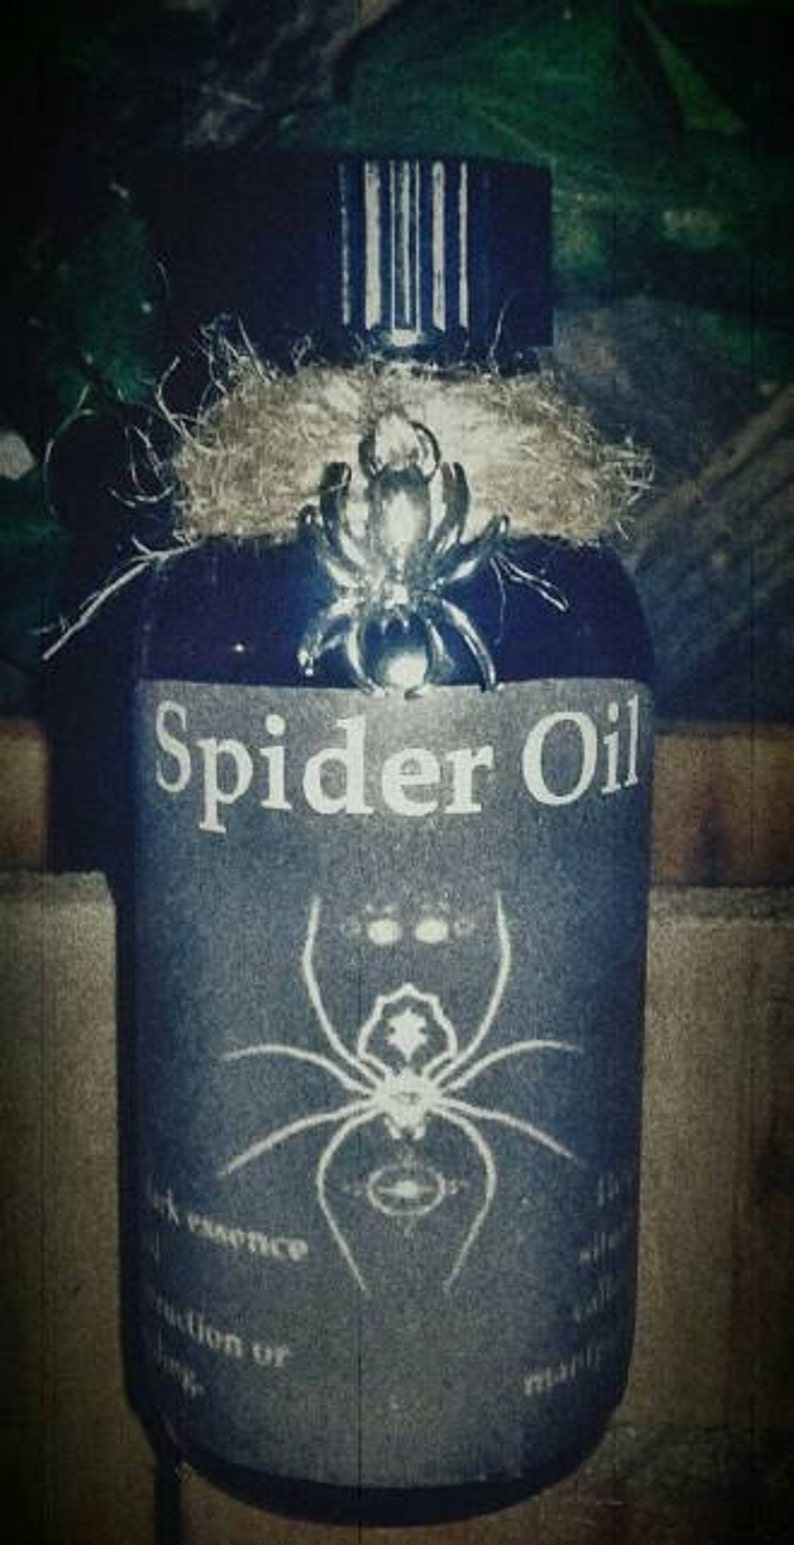 Spider Oil - Conjure - Ritual Oil - Magick - Witchcraft - Occult -  Manipulation Spells - Binding Spells - Hex - Pagan - Voodoo - Hoodoo